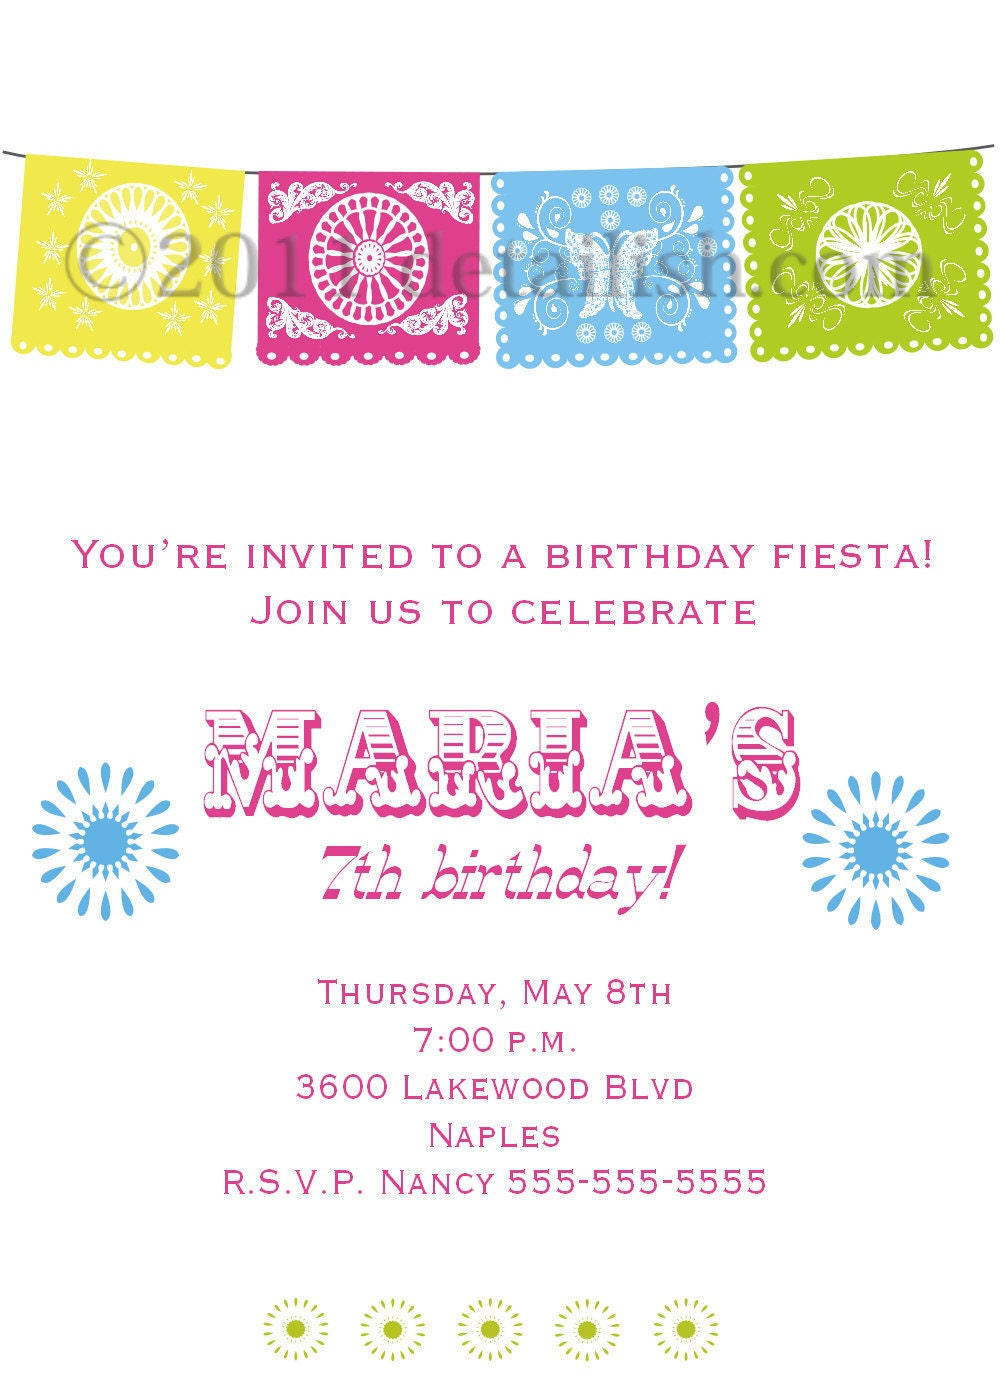 norwex party invitation ideas for nice invitations ideas - Norwex Party Invitation